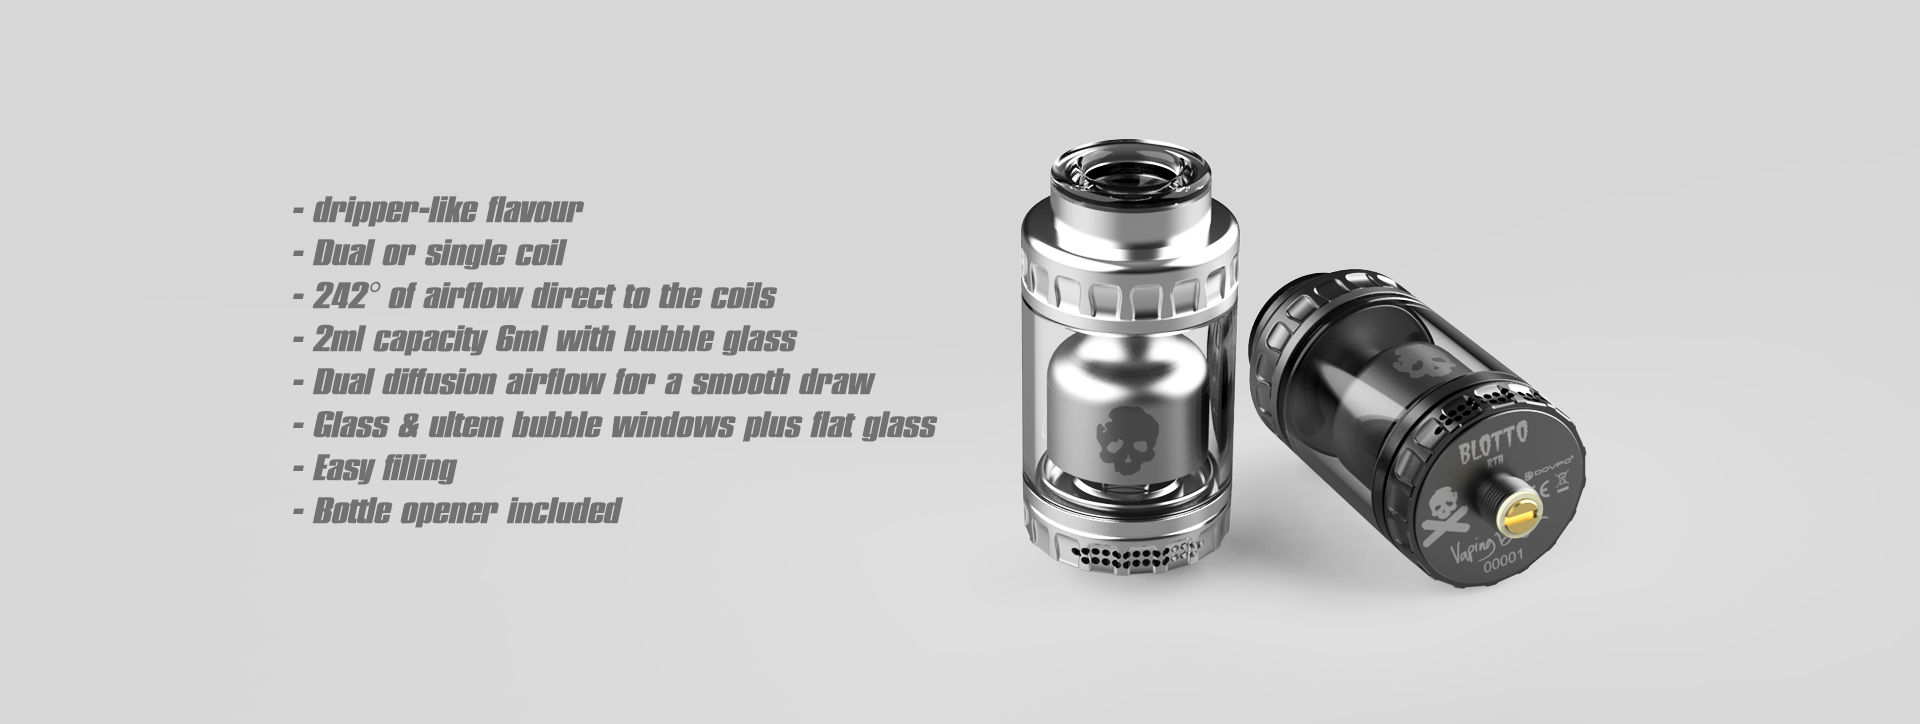 Dovpo Blotto RTA | 2ml